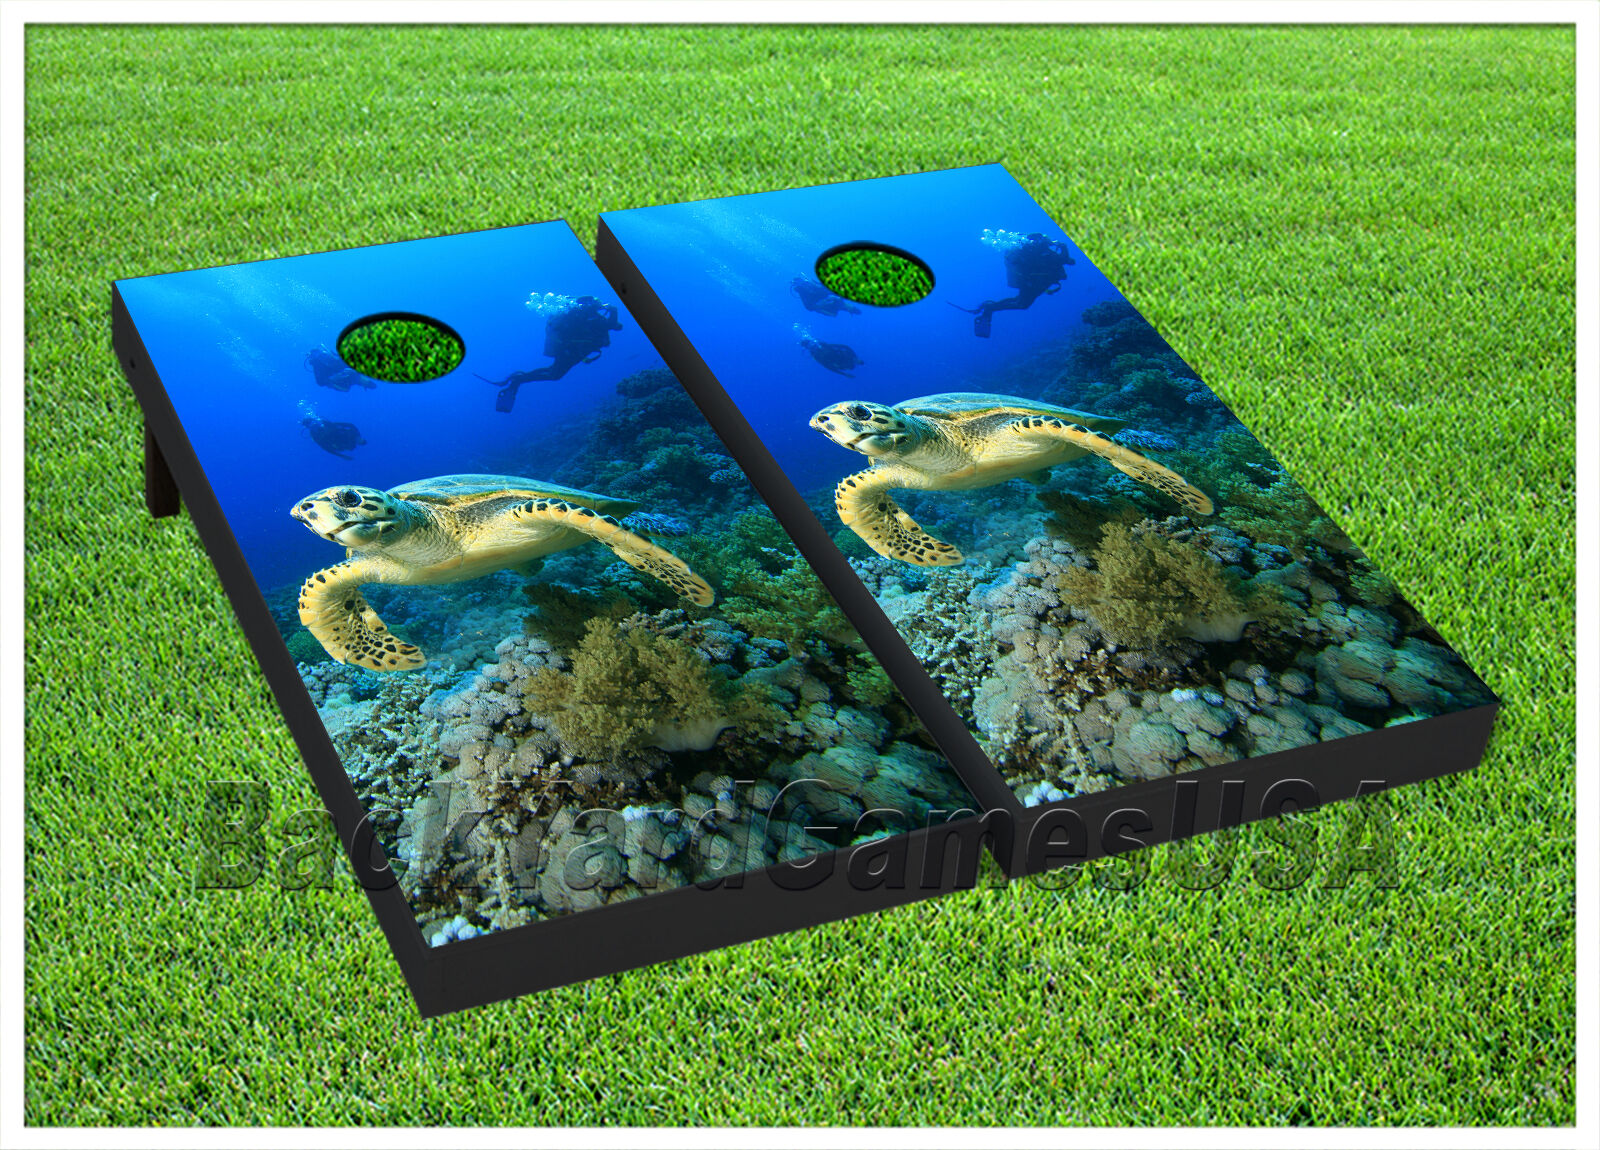 CORNHOLE BOARD  Set BEANBAG TOSS GAME w Bags Ocean Sea Turtle Reef Coral S01436  sale online save 70%